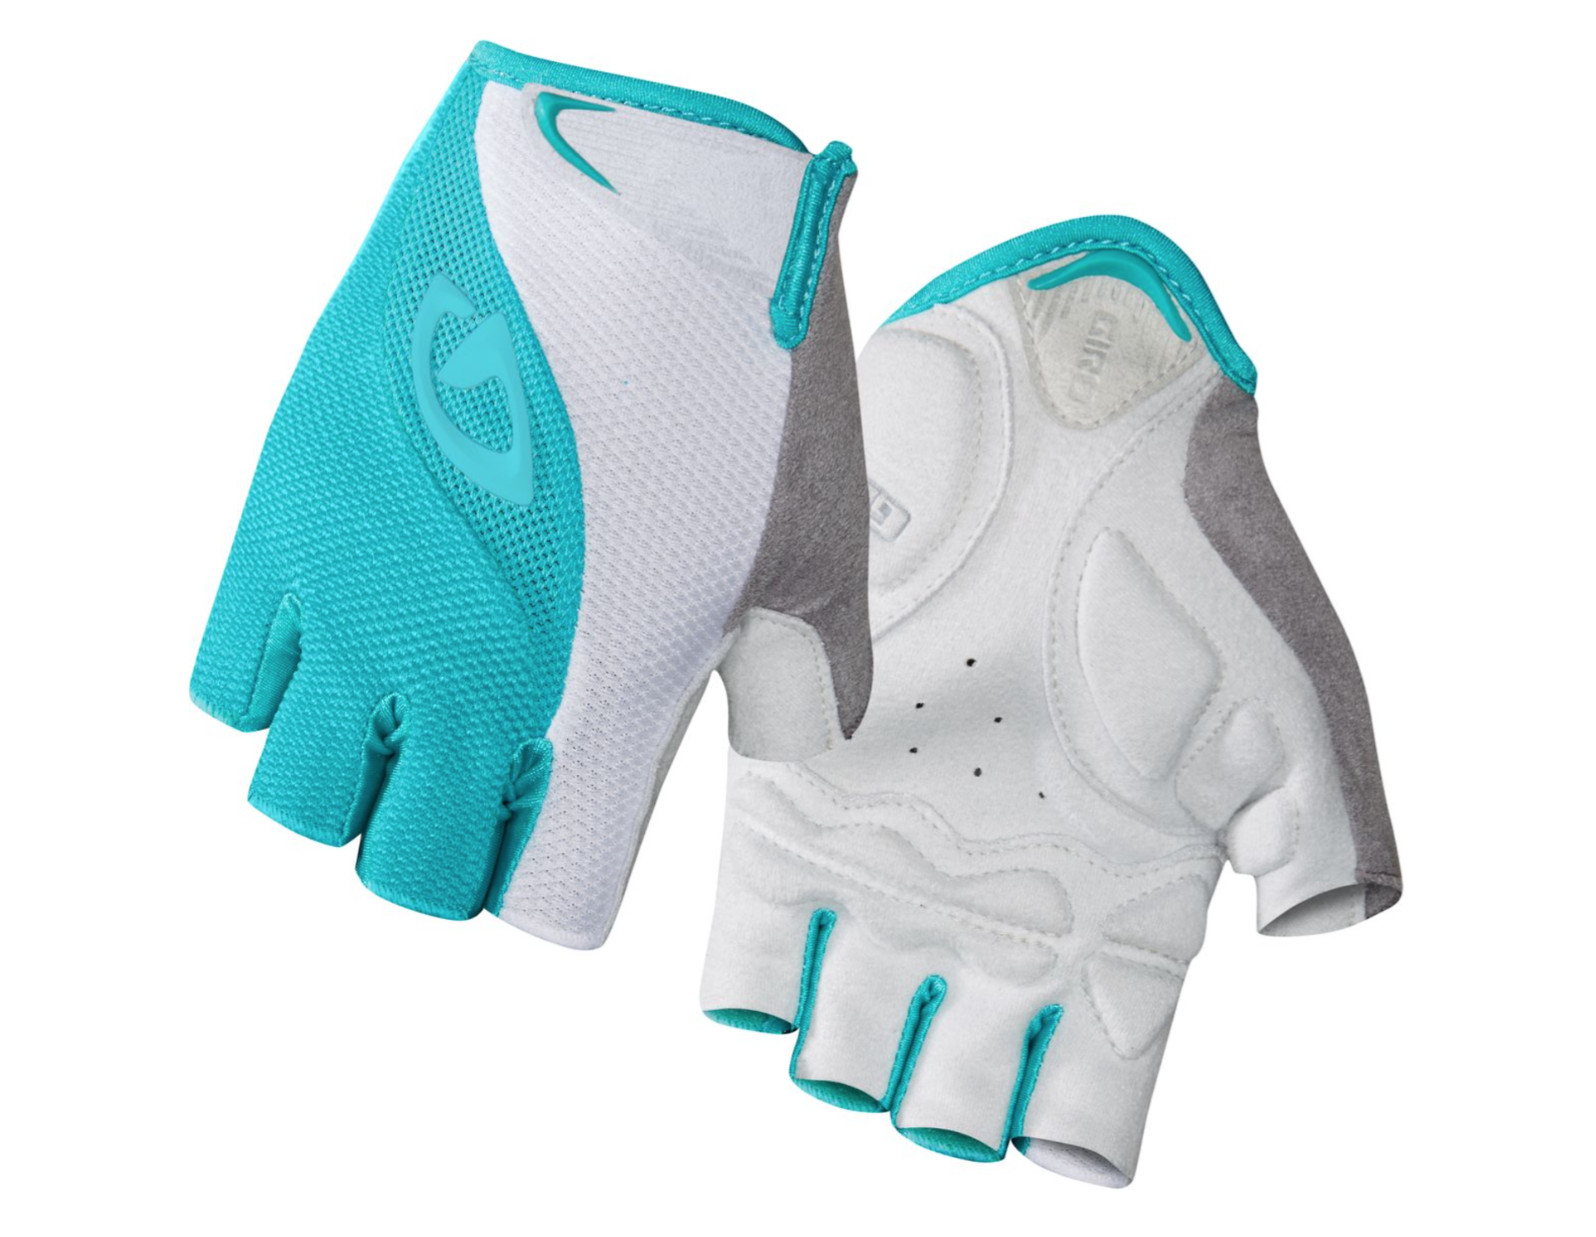 Giro Women's Tessa  Gloves Giro Women's Tessa Gloves - Turquoise : White